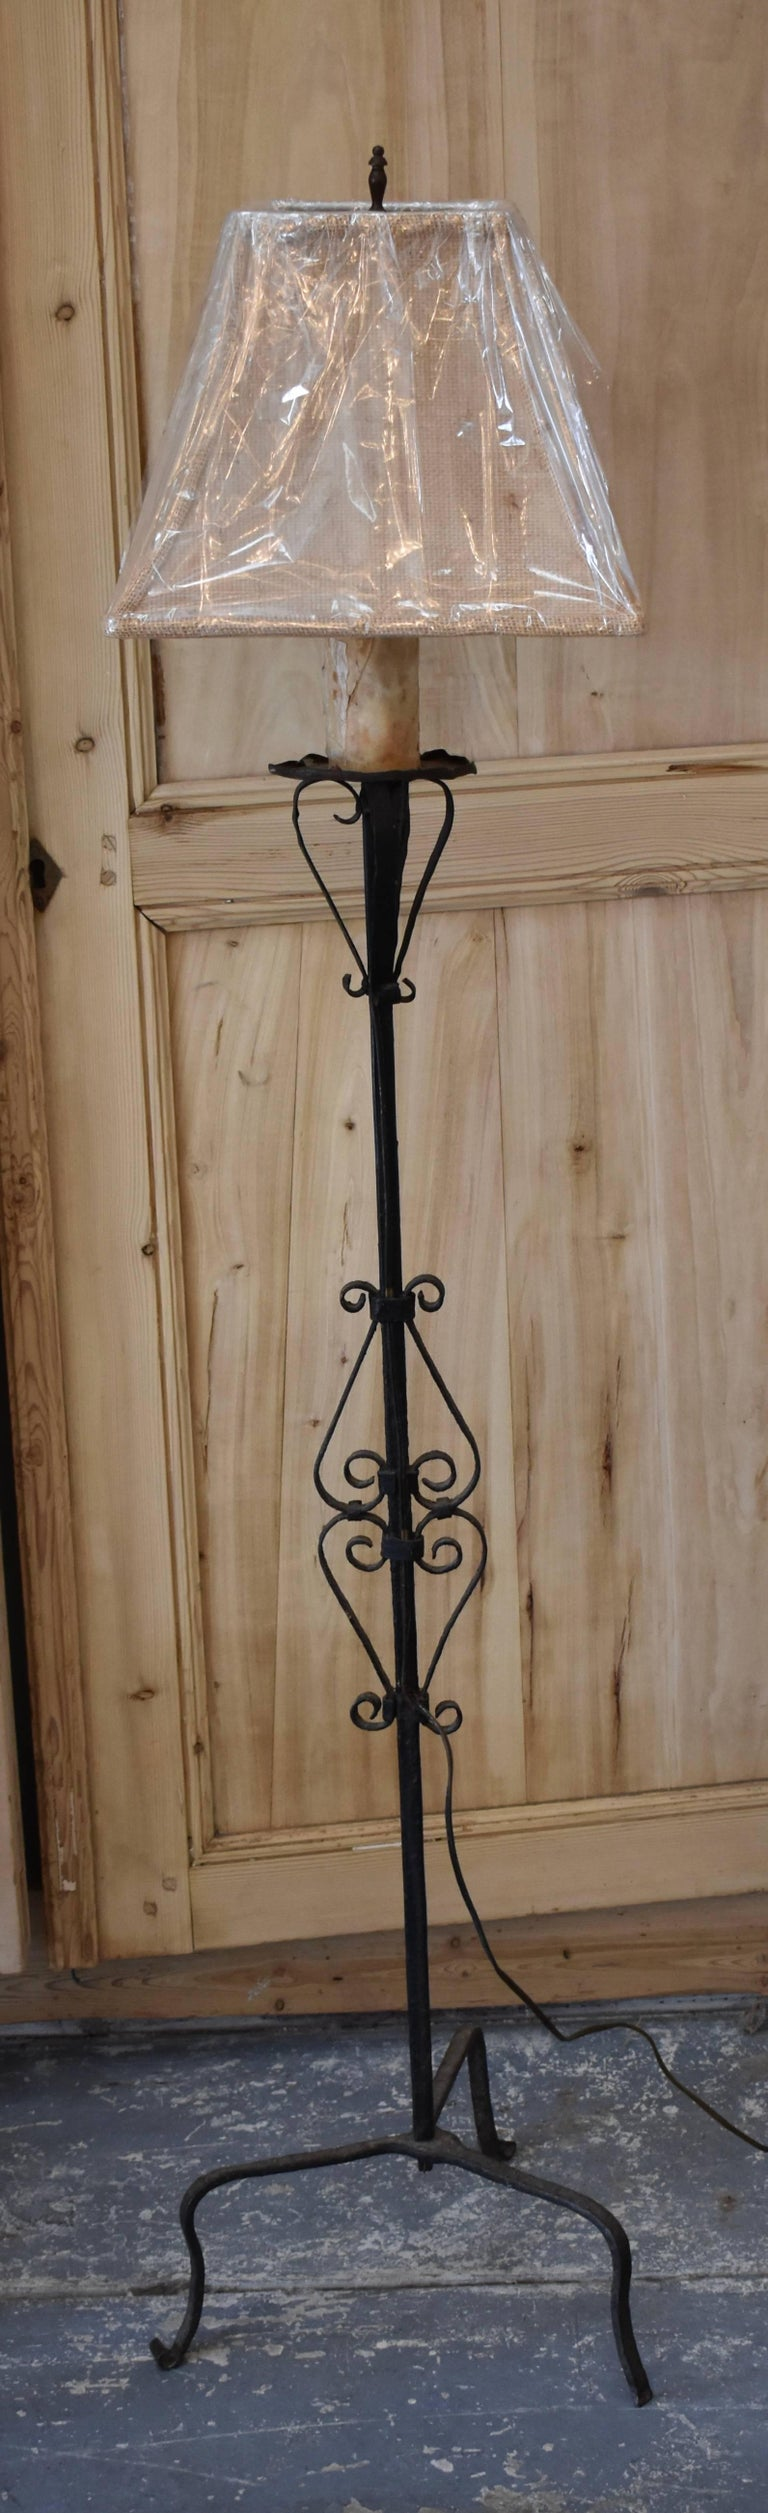 French Iron Torchiere Floor Lamp For Sale 3